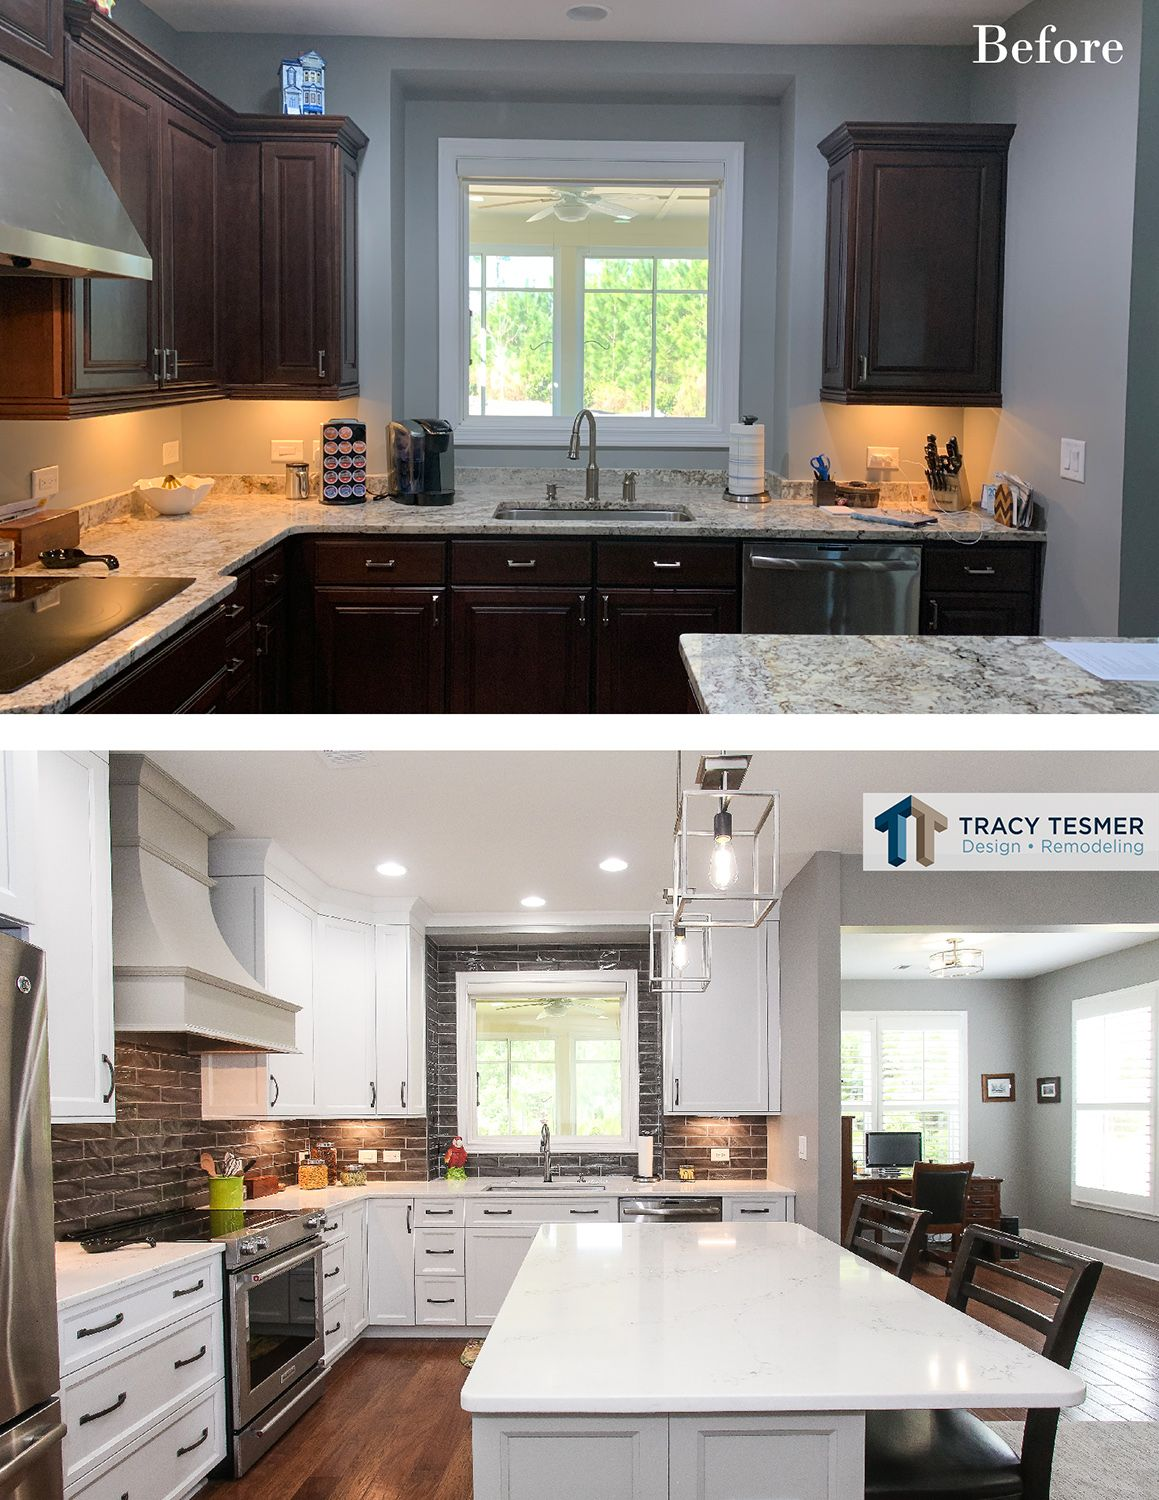 Dark To Light Kitchen Cabinetry Update Before And After Kitchen Remodel Cost Contemporary Kitchen Design Kitchen Remodel